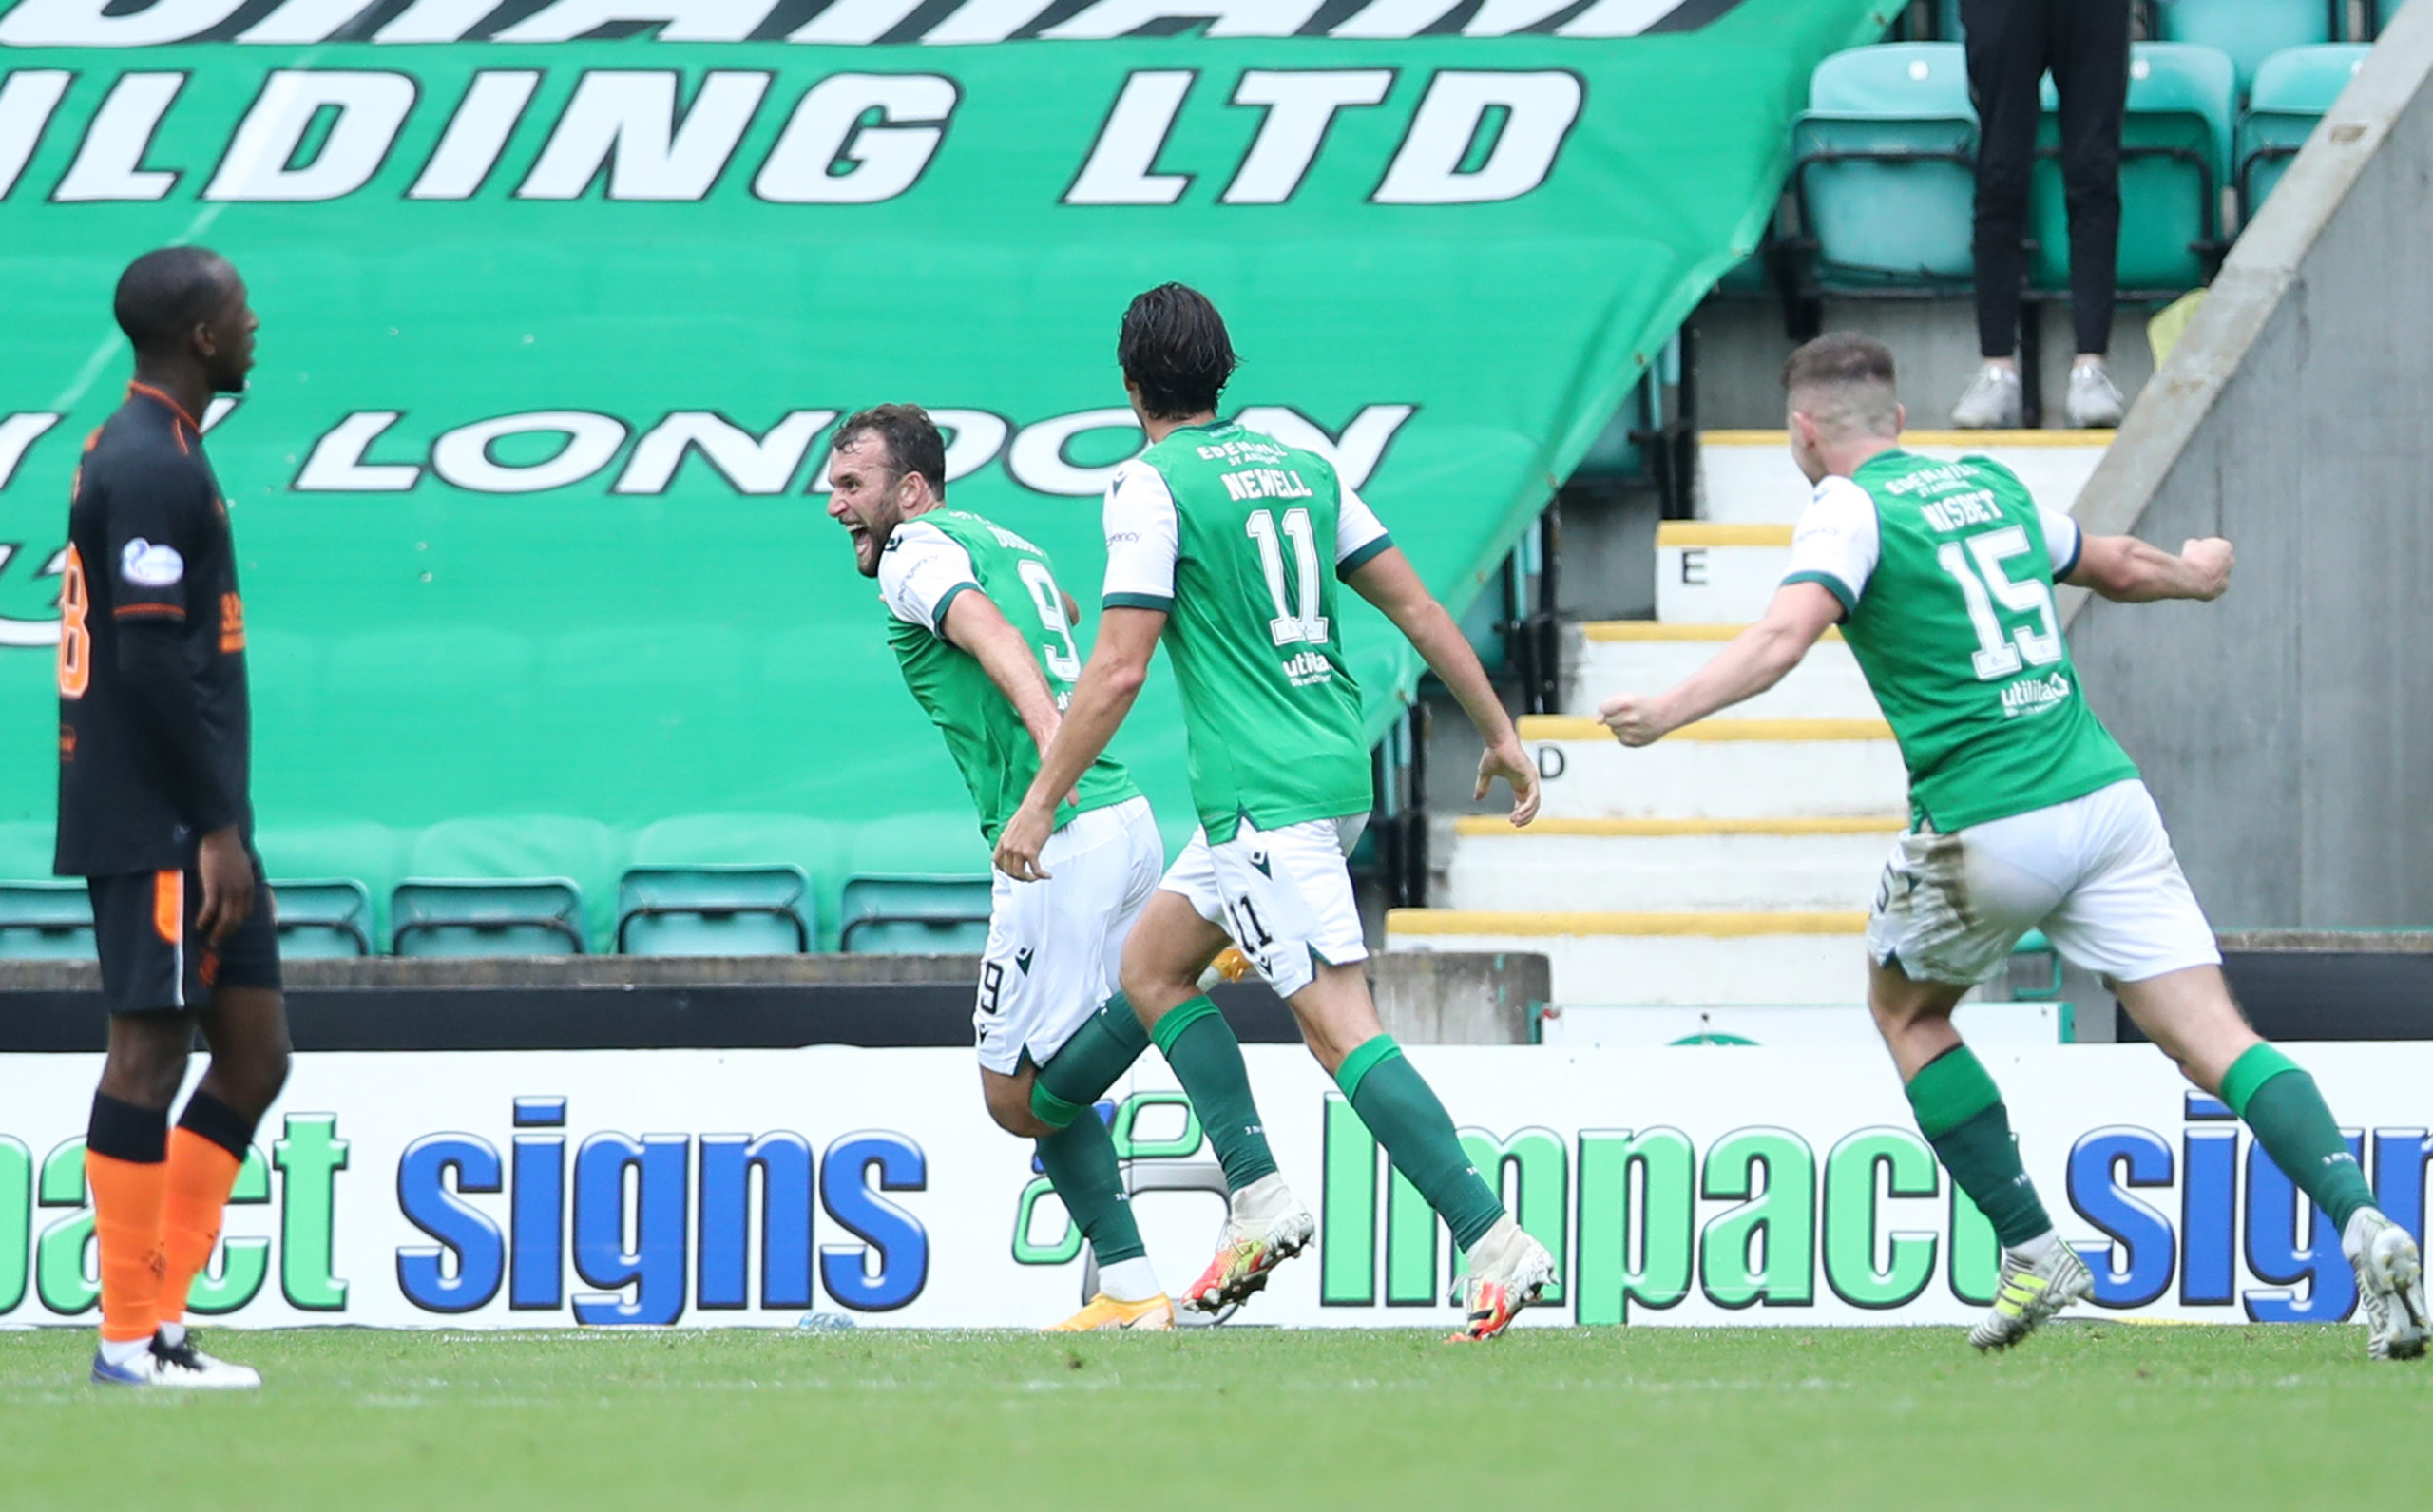 Allan missed Hibs' draw with Rangers